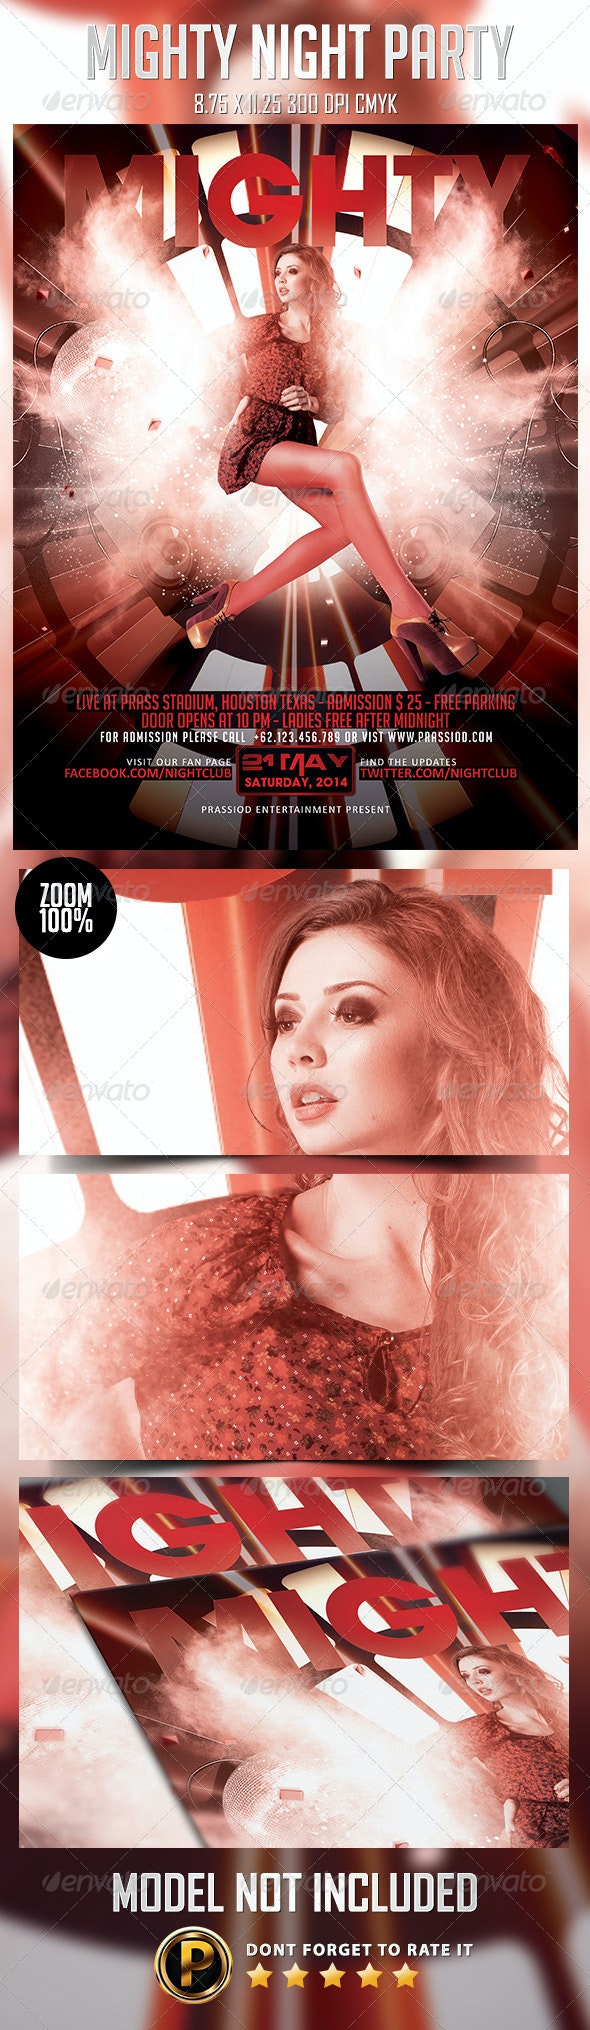 Mighty Night Party Flyer Template